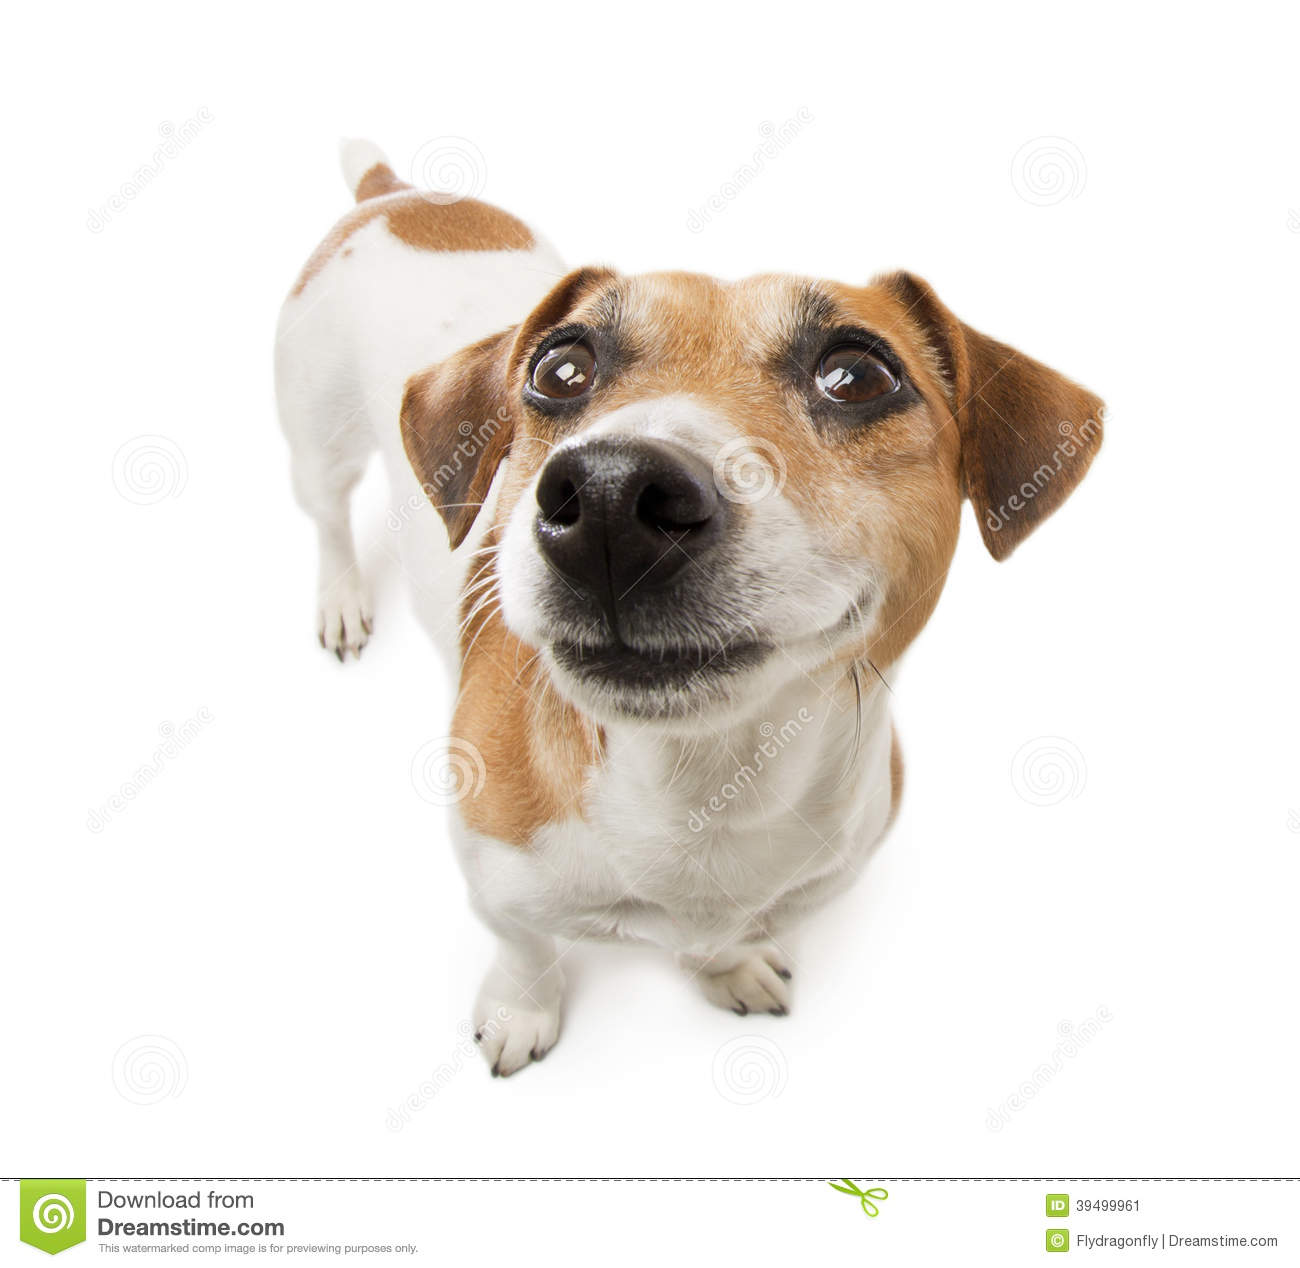 Happy Dog Stock Photo - Image: 39499961 - photo#15